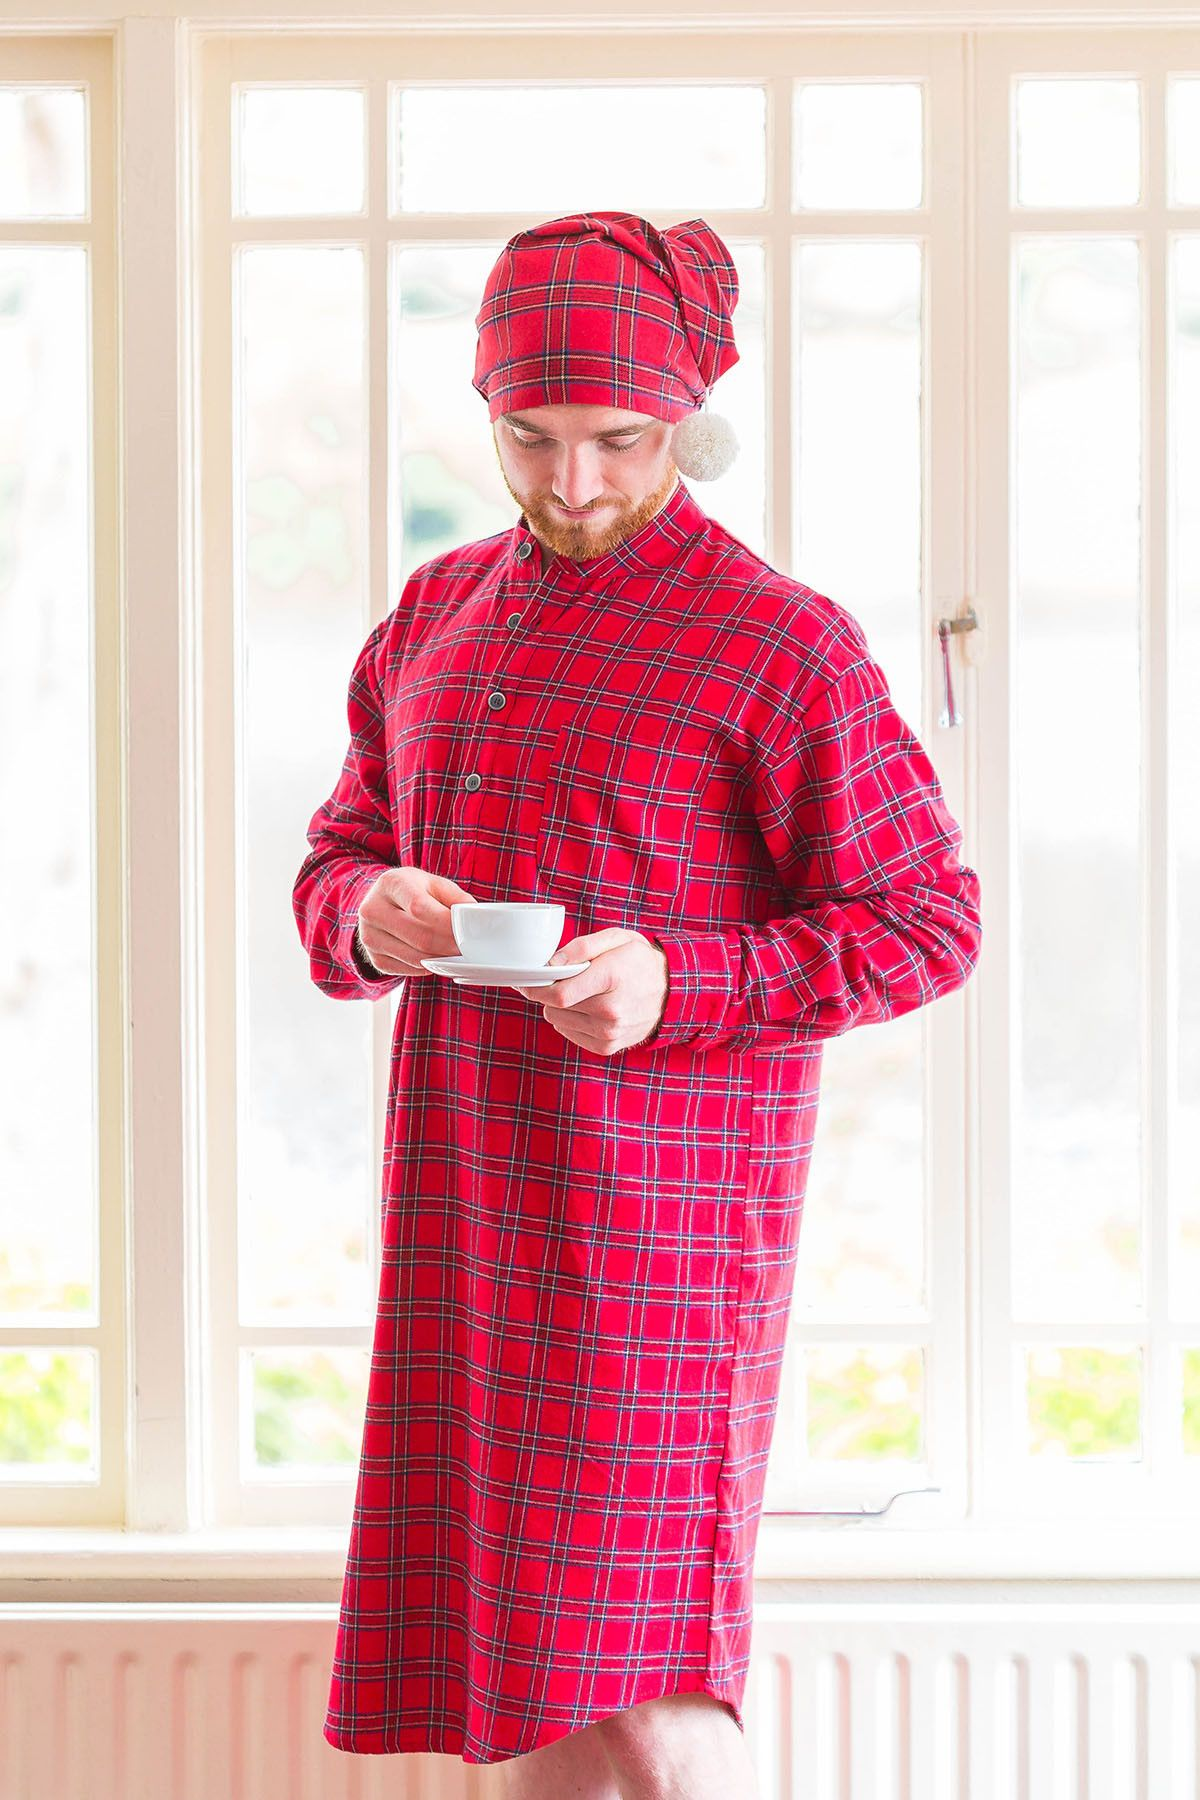 a51e1d1213 Nightcap Cotton Flannelette Mens - Red Tartan Royal Stewart (LV27)   aranjumpers  irishflannel  leevalleyireland  grandfathershirt   fabulousflannel ...